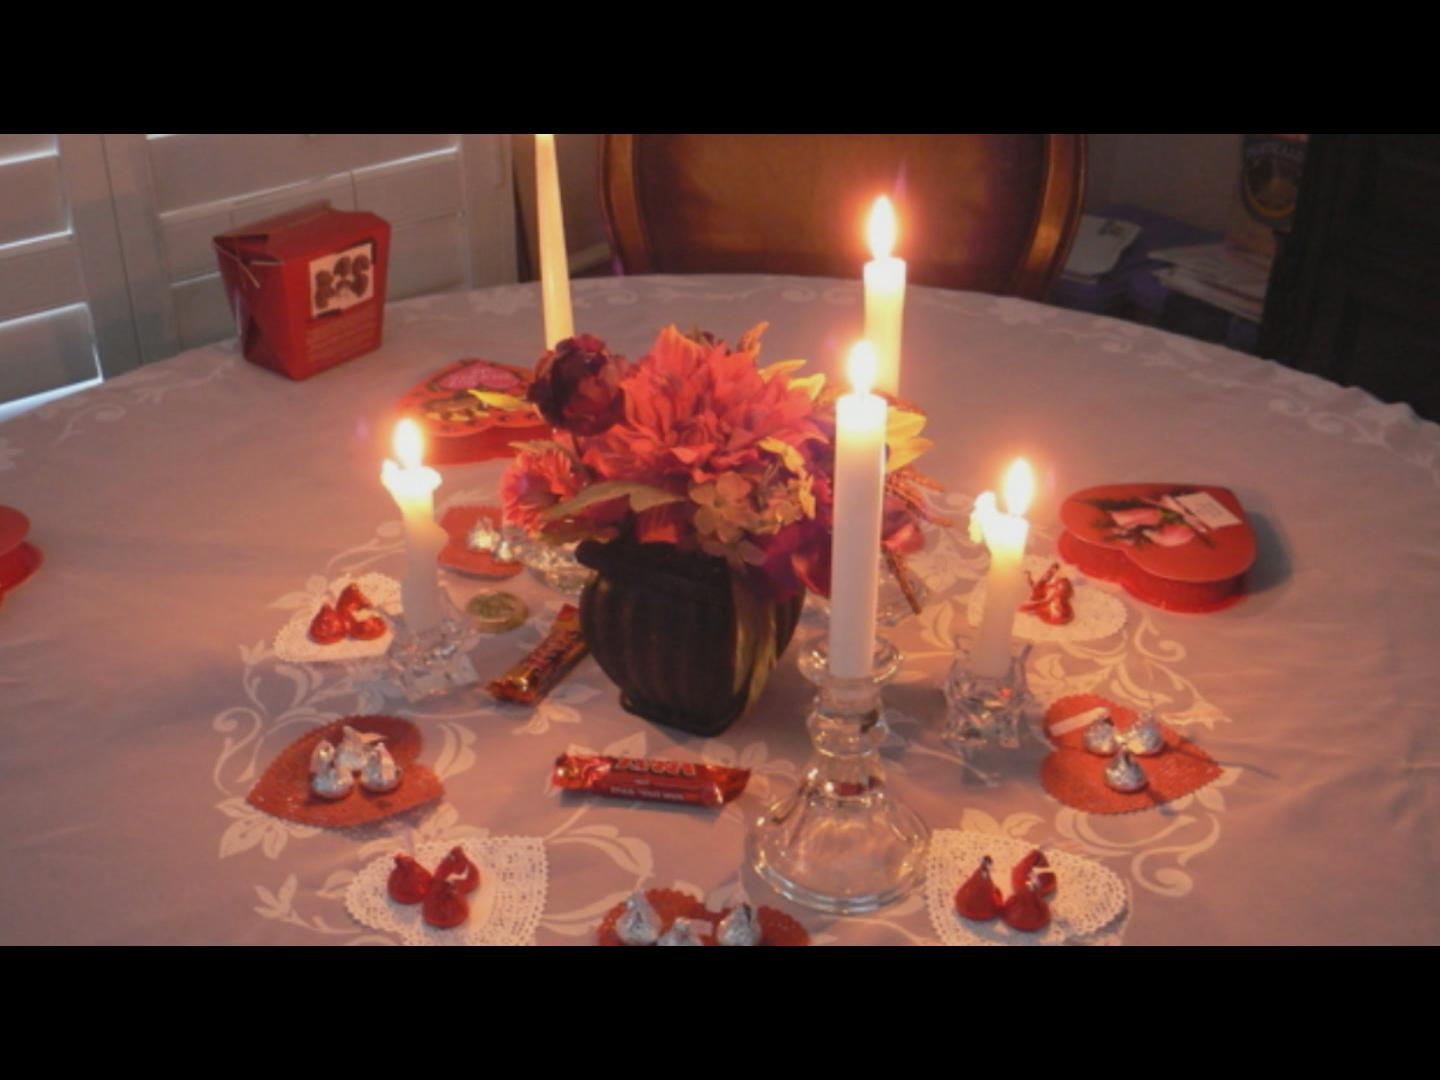 prepare a romantic dinner for two. avoid the wait at the restaurant by eating at home. relax and enjoy the day.